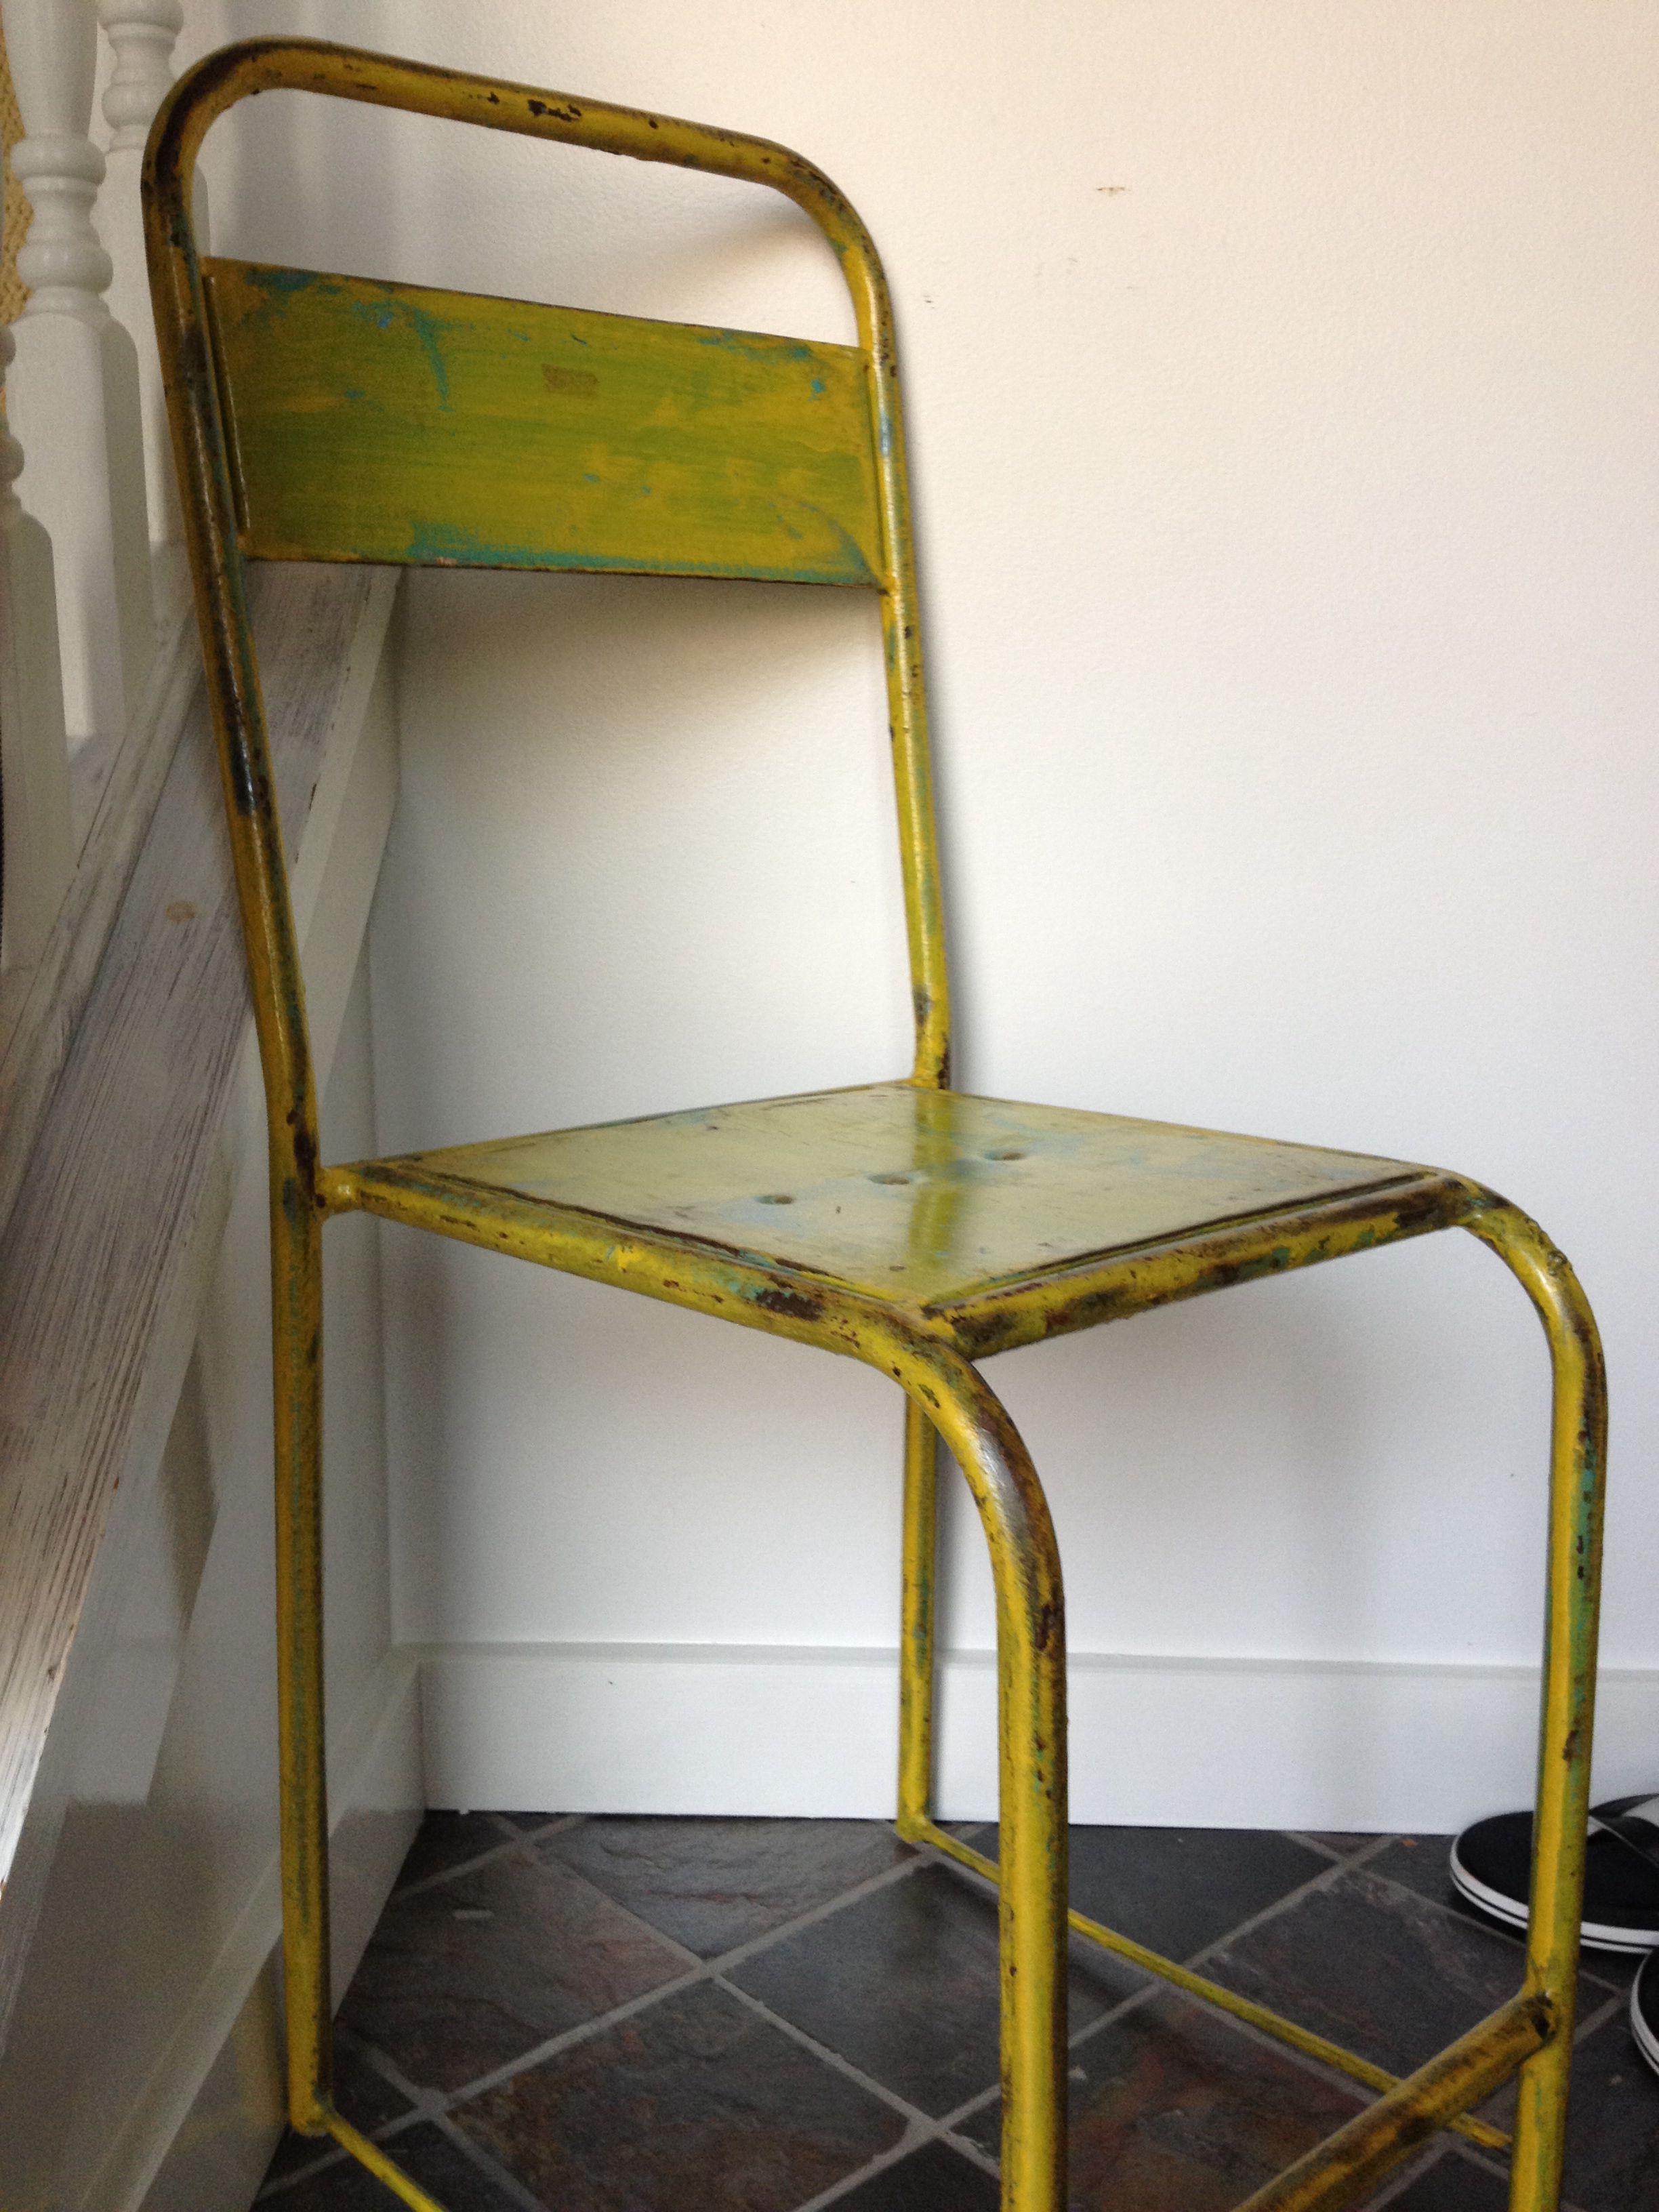 Old metal camp chair upcycled. From Tuesday Morning - $25 ...